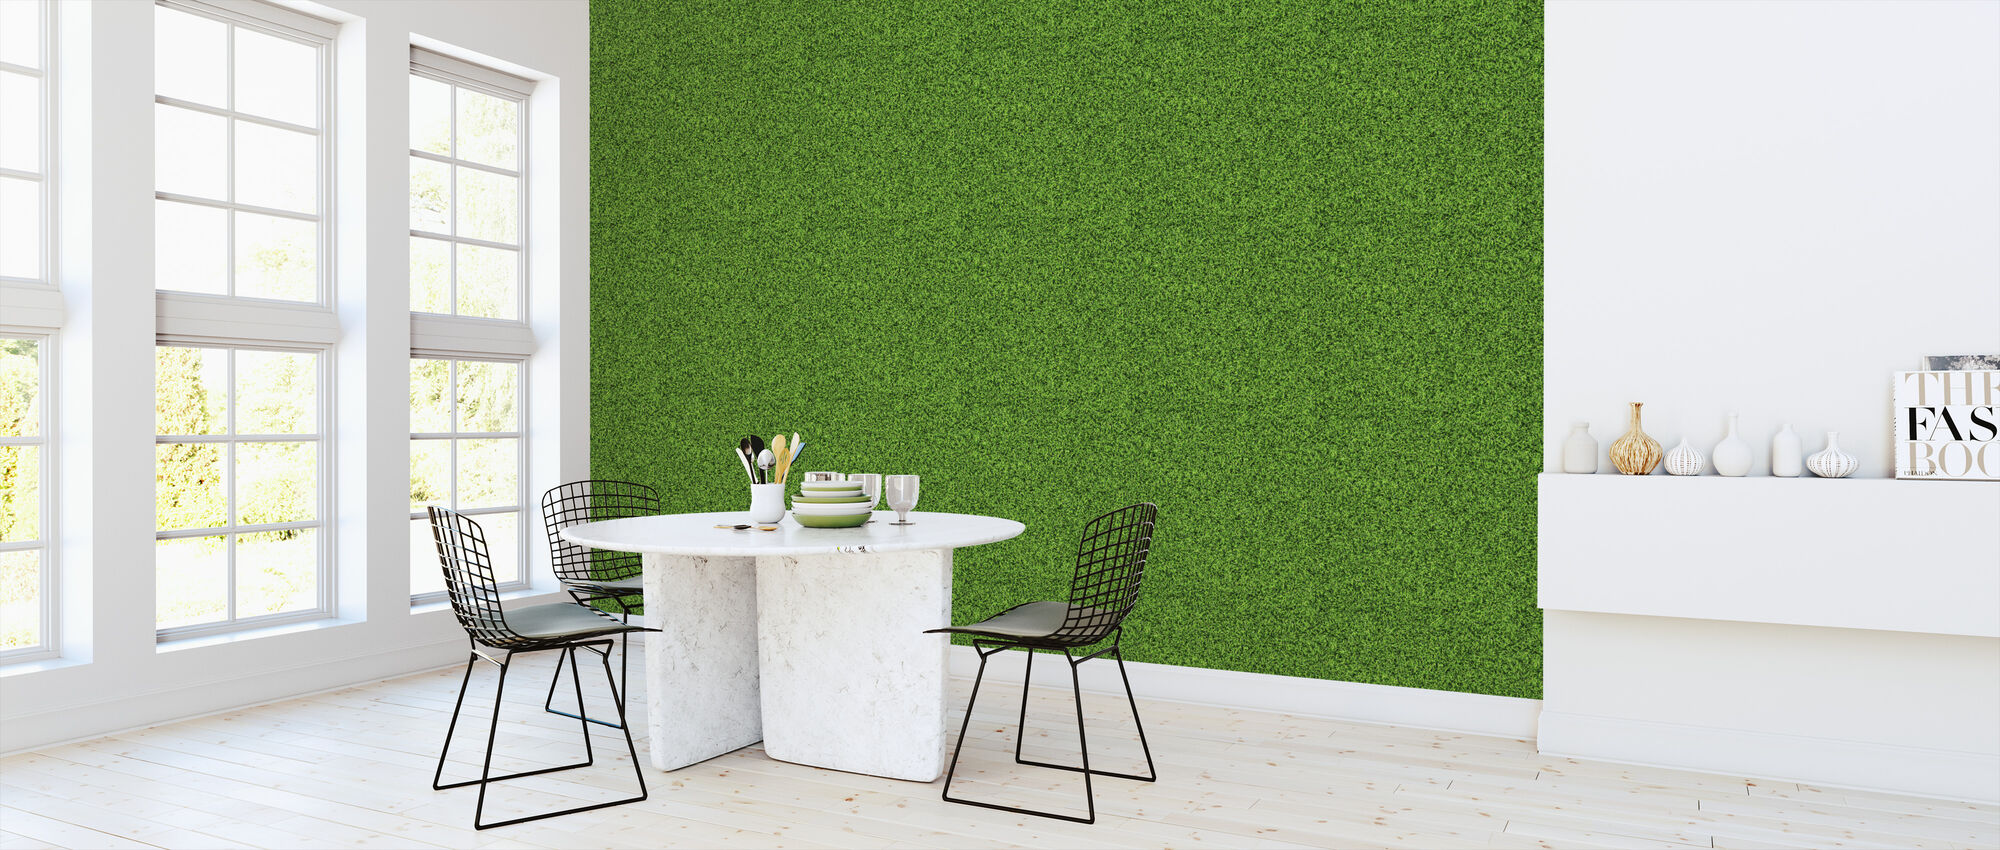 Green Lawn - Wallpaper - Kitchen